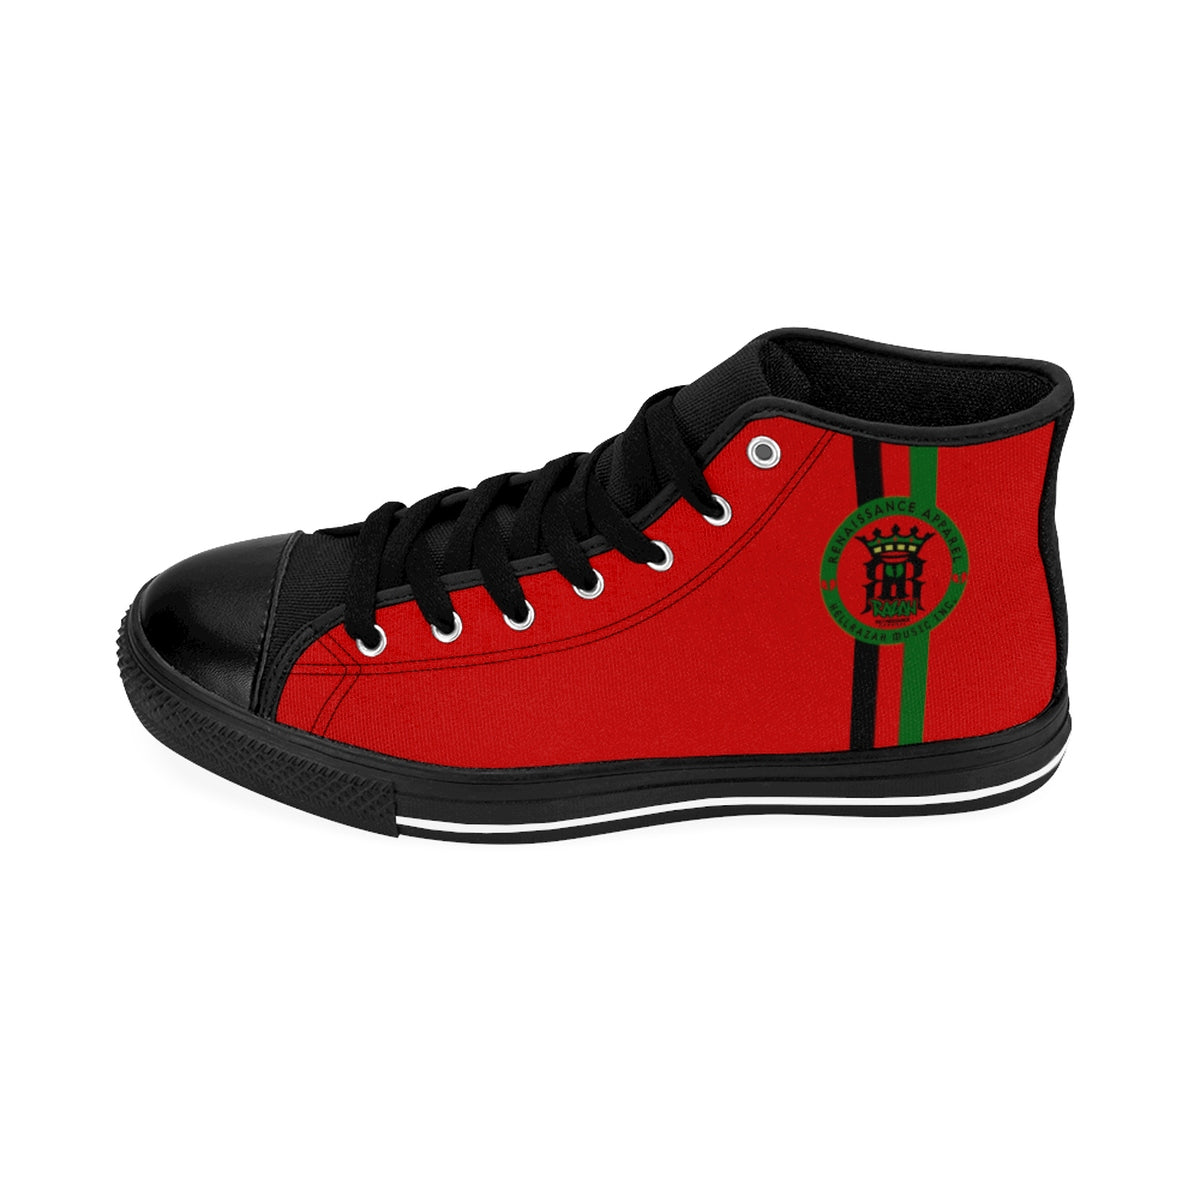 Razah Renaissance Apparel Signature Fall 19 Men's Colorway High-top Sneakers